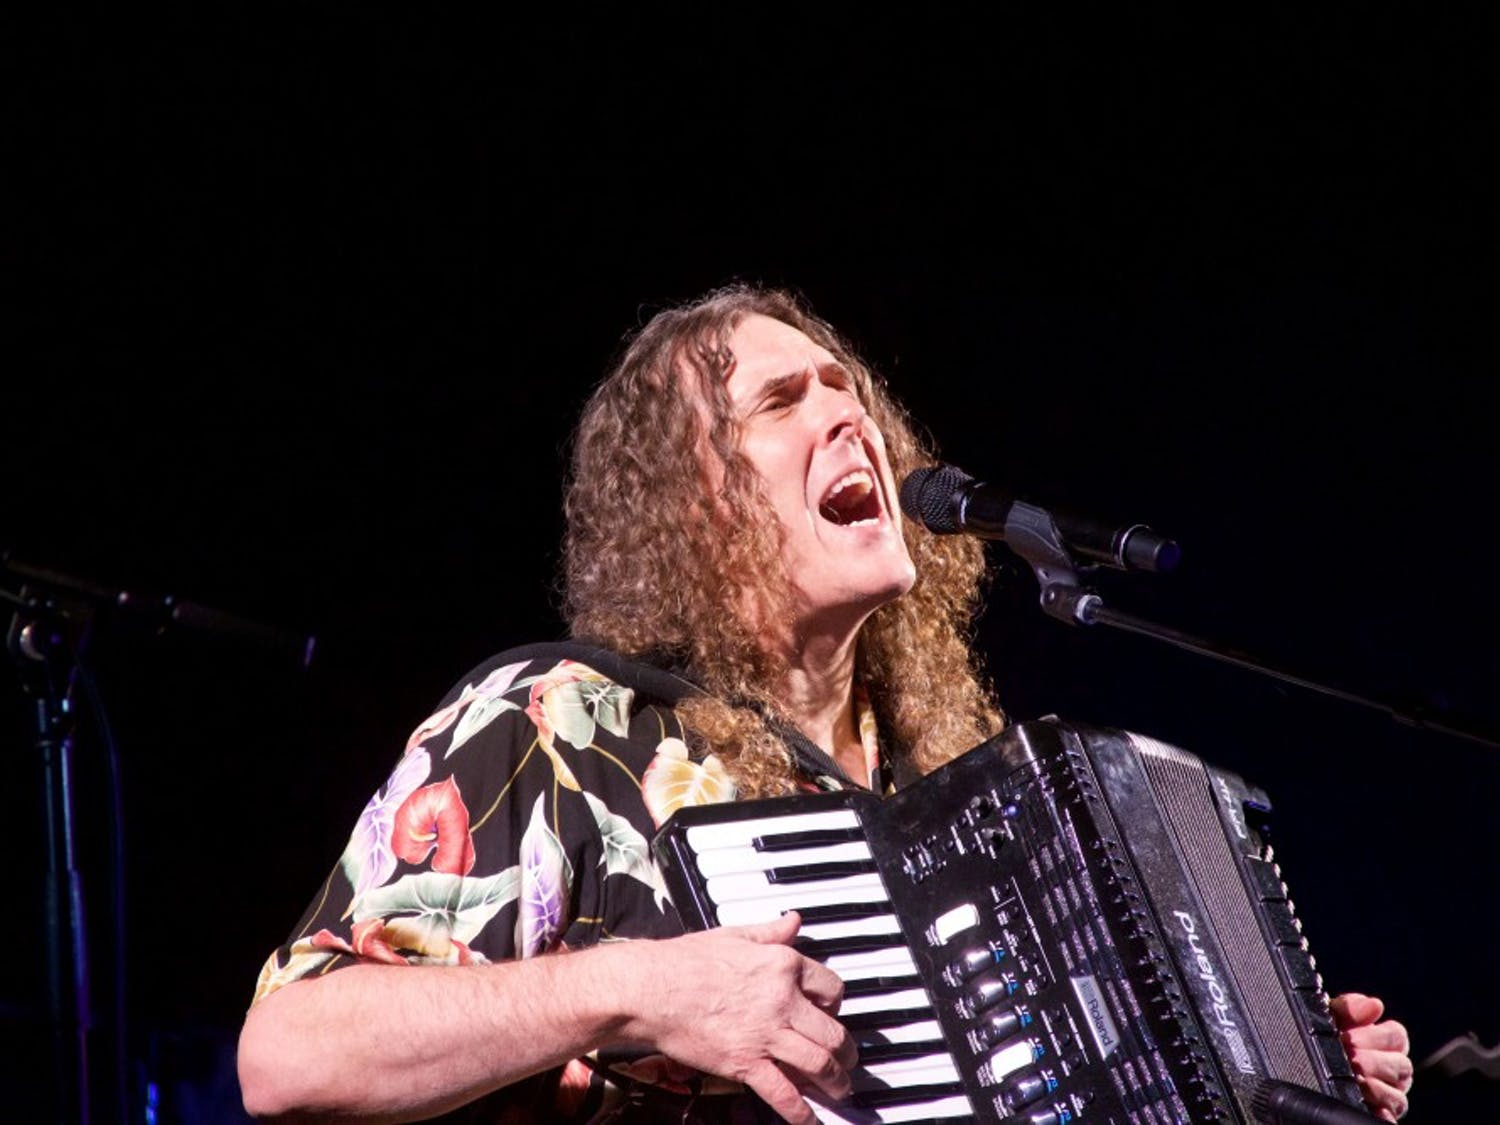 Comedian and musician Weird Al Yankovic took to the CFA Tuesday night to play a string of original tracks and a medley of his most popular parodies.